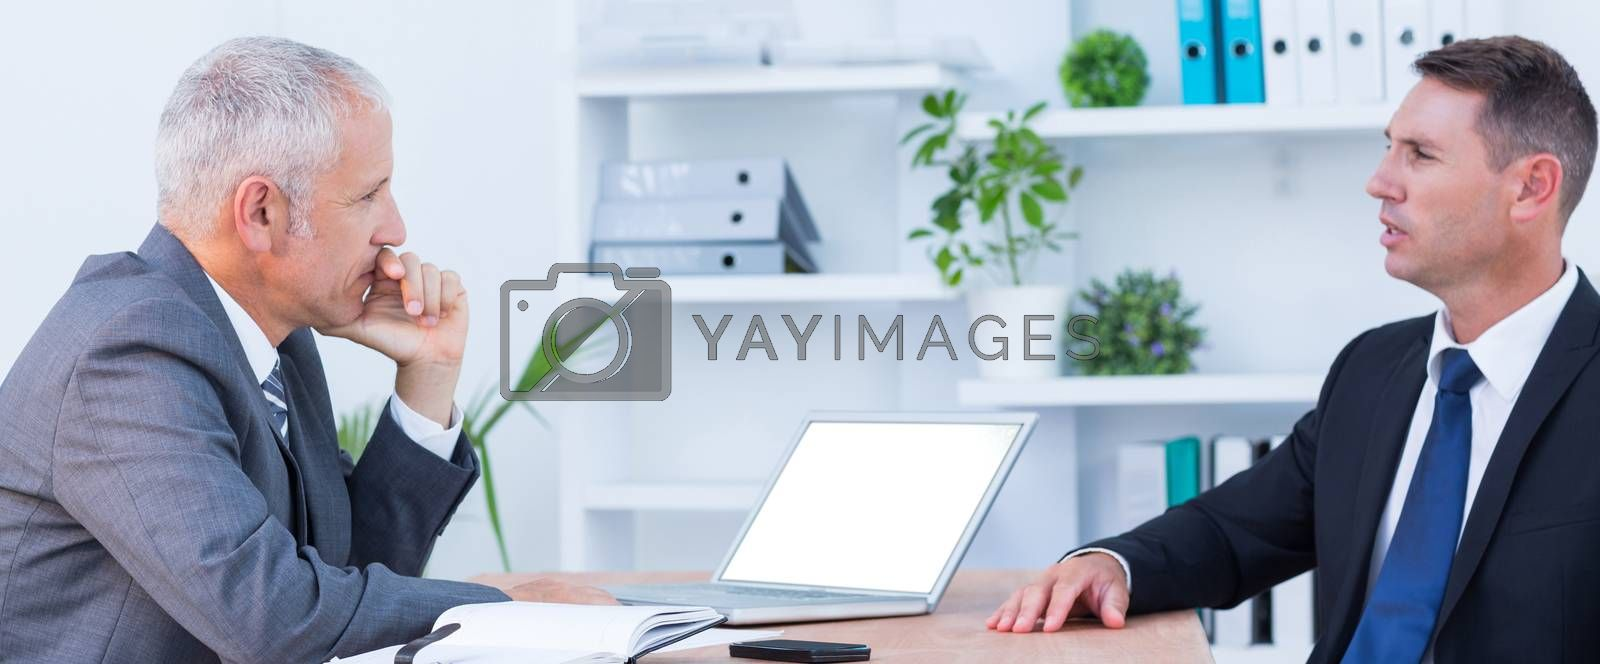 Royalty free image of Two businessmen speaking and working  by Wavebreakmedia